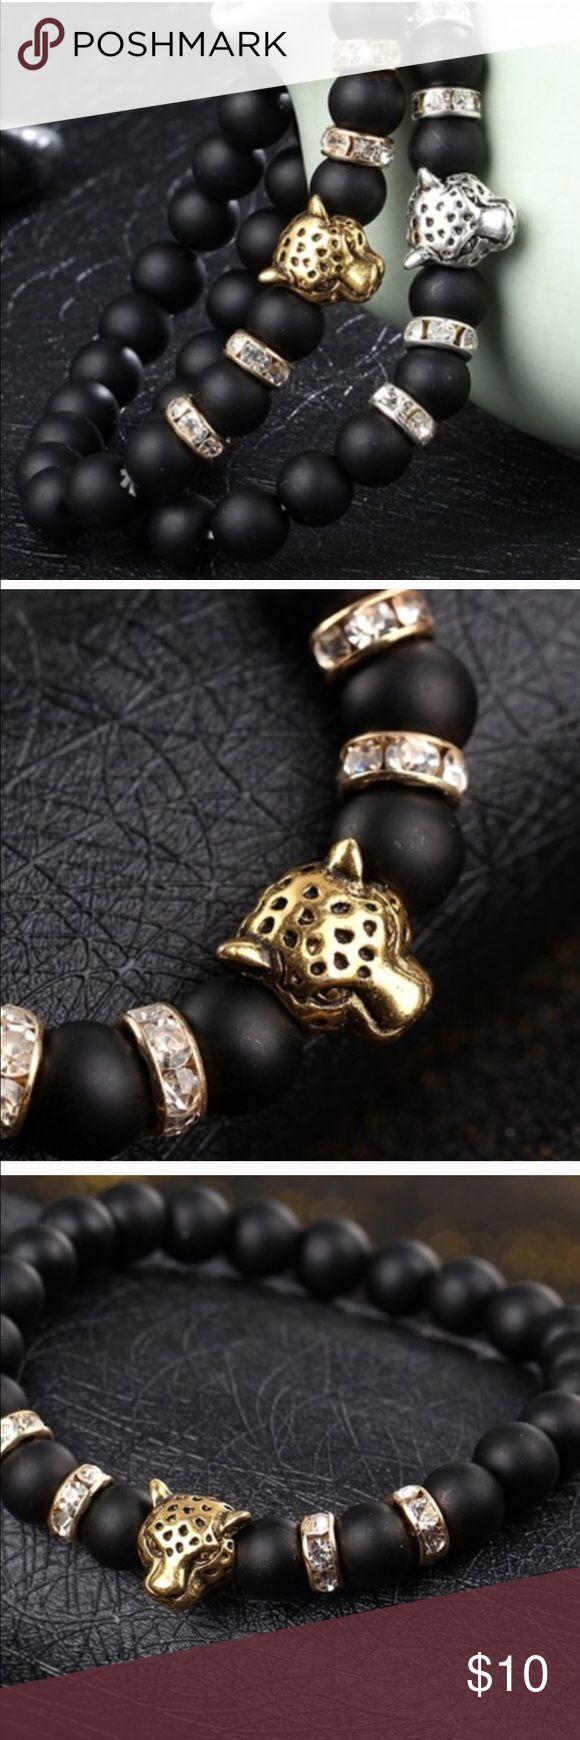 🆕Matte Unisex Stretch Bracelets With Leopard Face Great bracelets to wear with a watch or stack with other bracelets. Gold and silver available. Accessories Jewelry